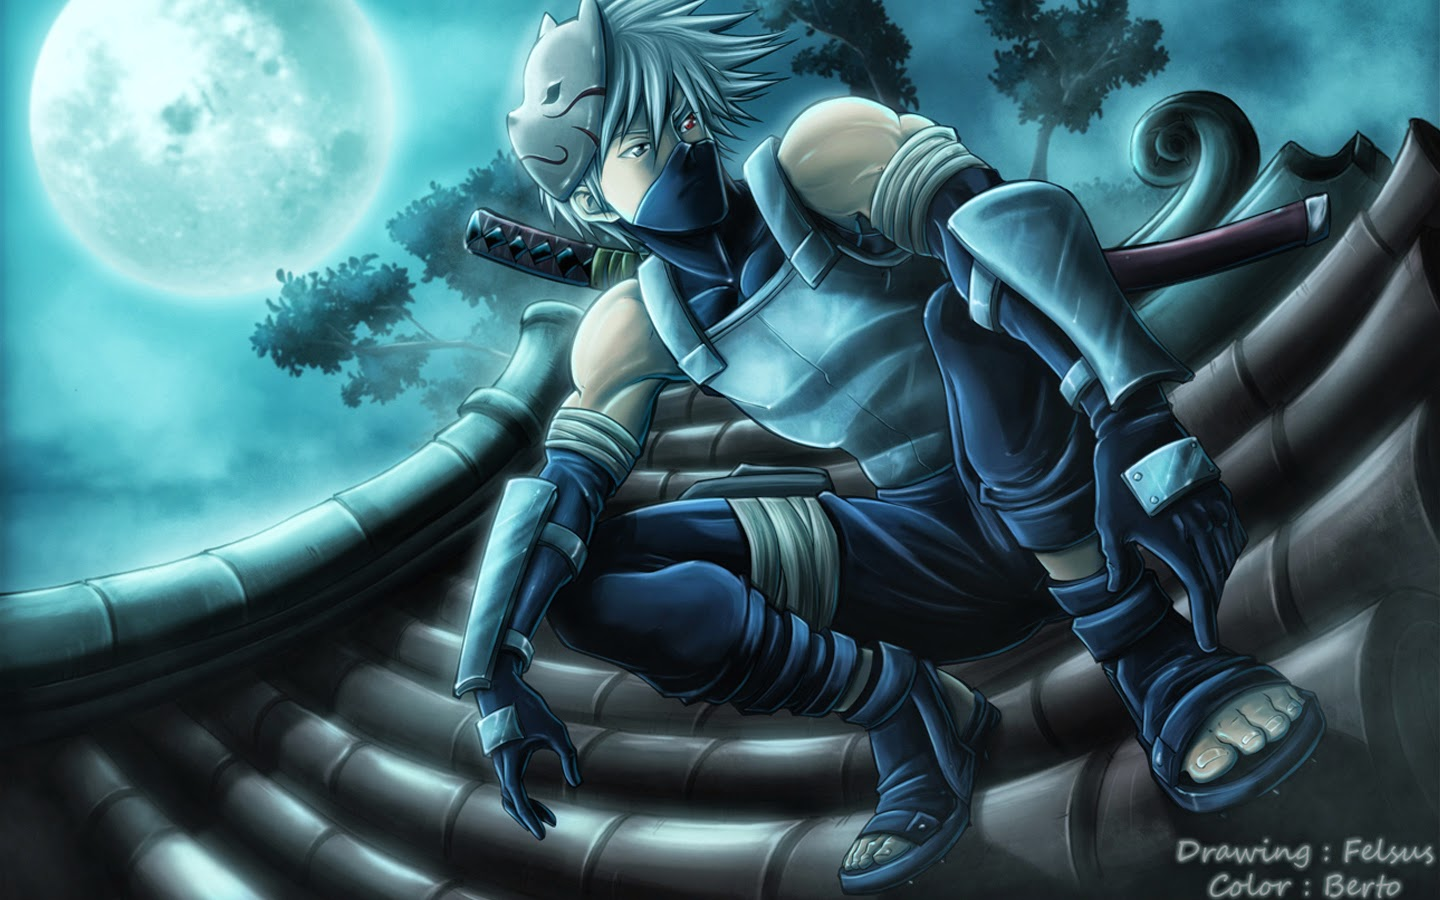 45 kakashi hd wallpaper on wallpapersafari - Kakashi sensei wallpaper ...